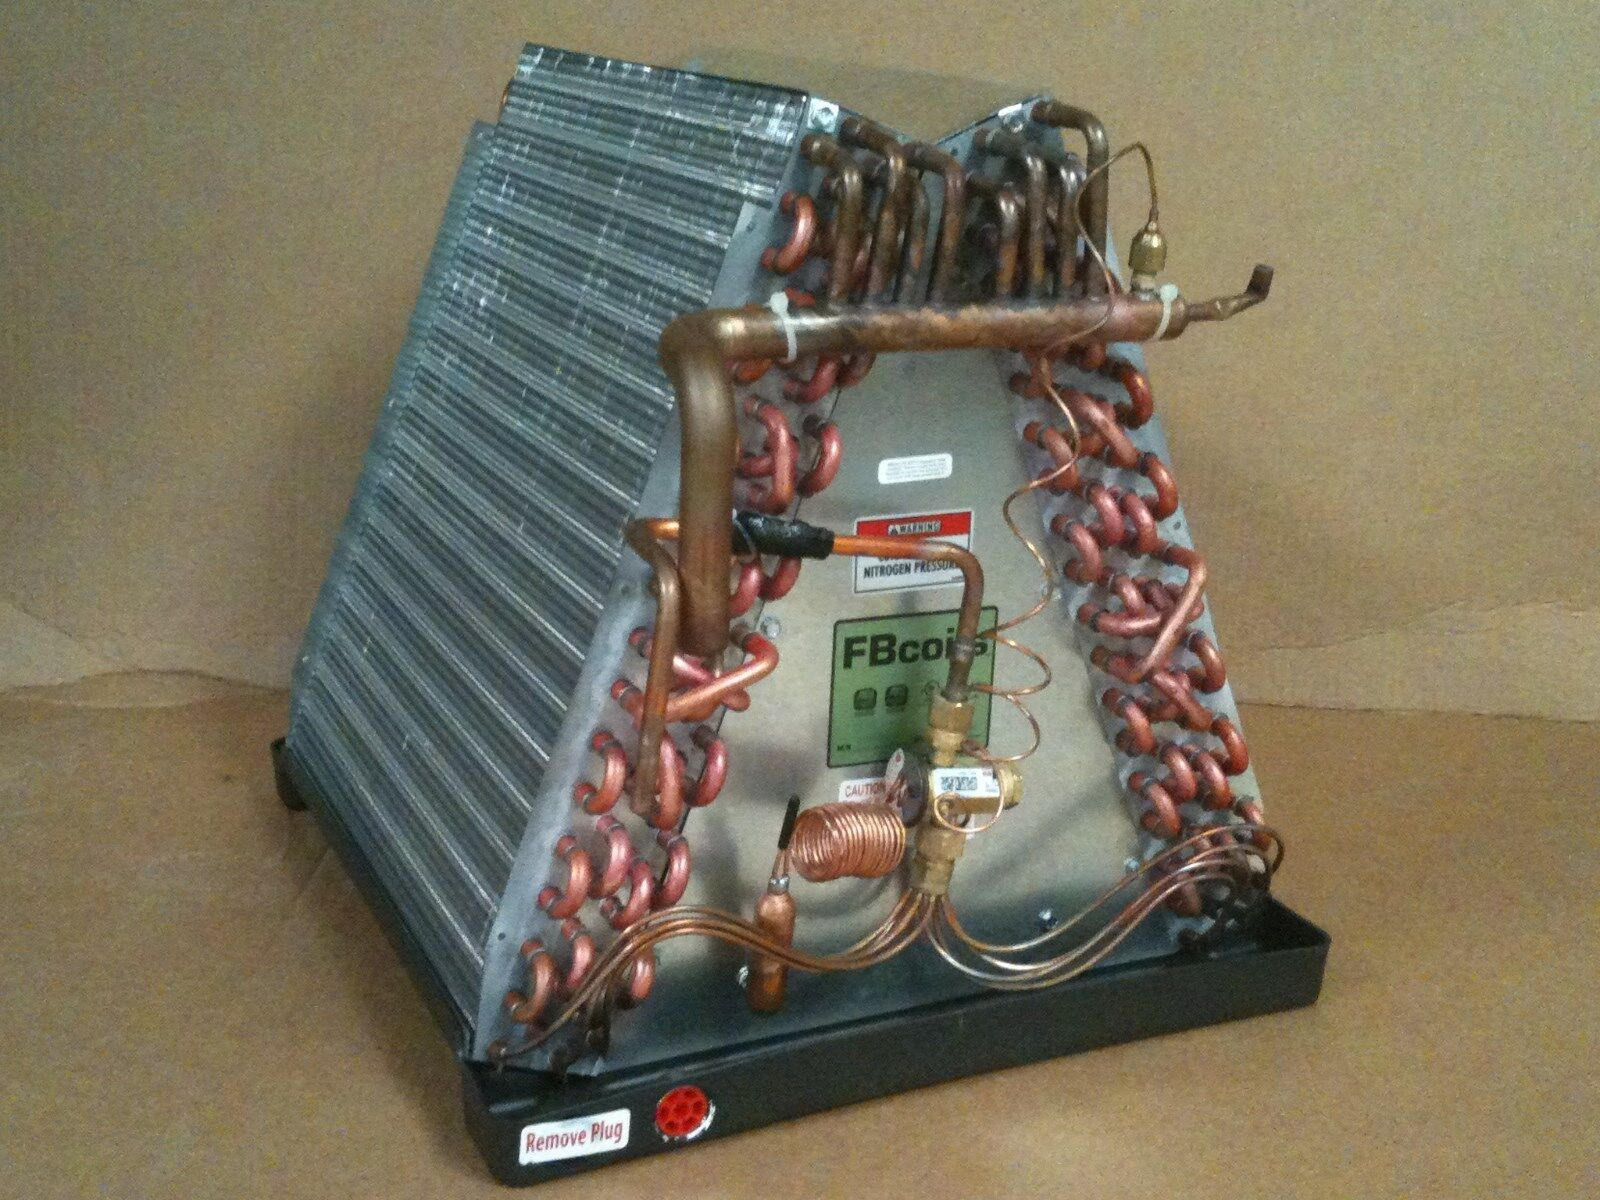 20 mortex furnace pictures and ideas on stem education caucus